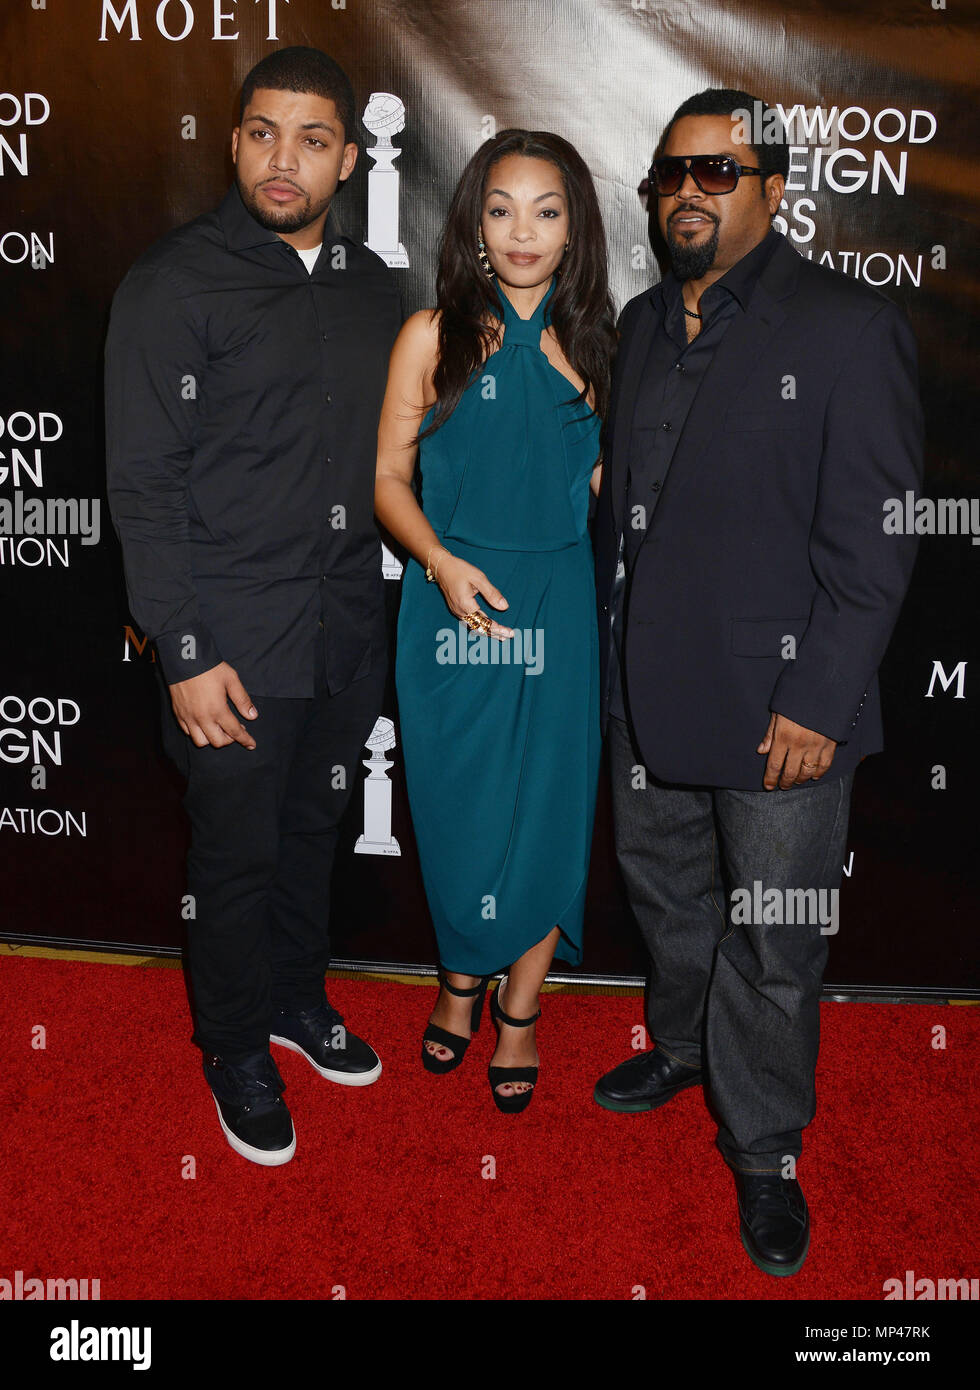 Ice Cube Son O Shea Jackson Jr 077 At The 2015 Hollywood Foreign Press Association Grants Banquet At The Beverly Wilshire Hotel In Los Angeles August 13 2015ice Cube Son O Shea Jackson Jr